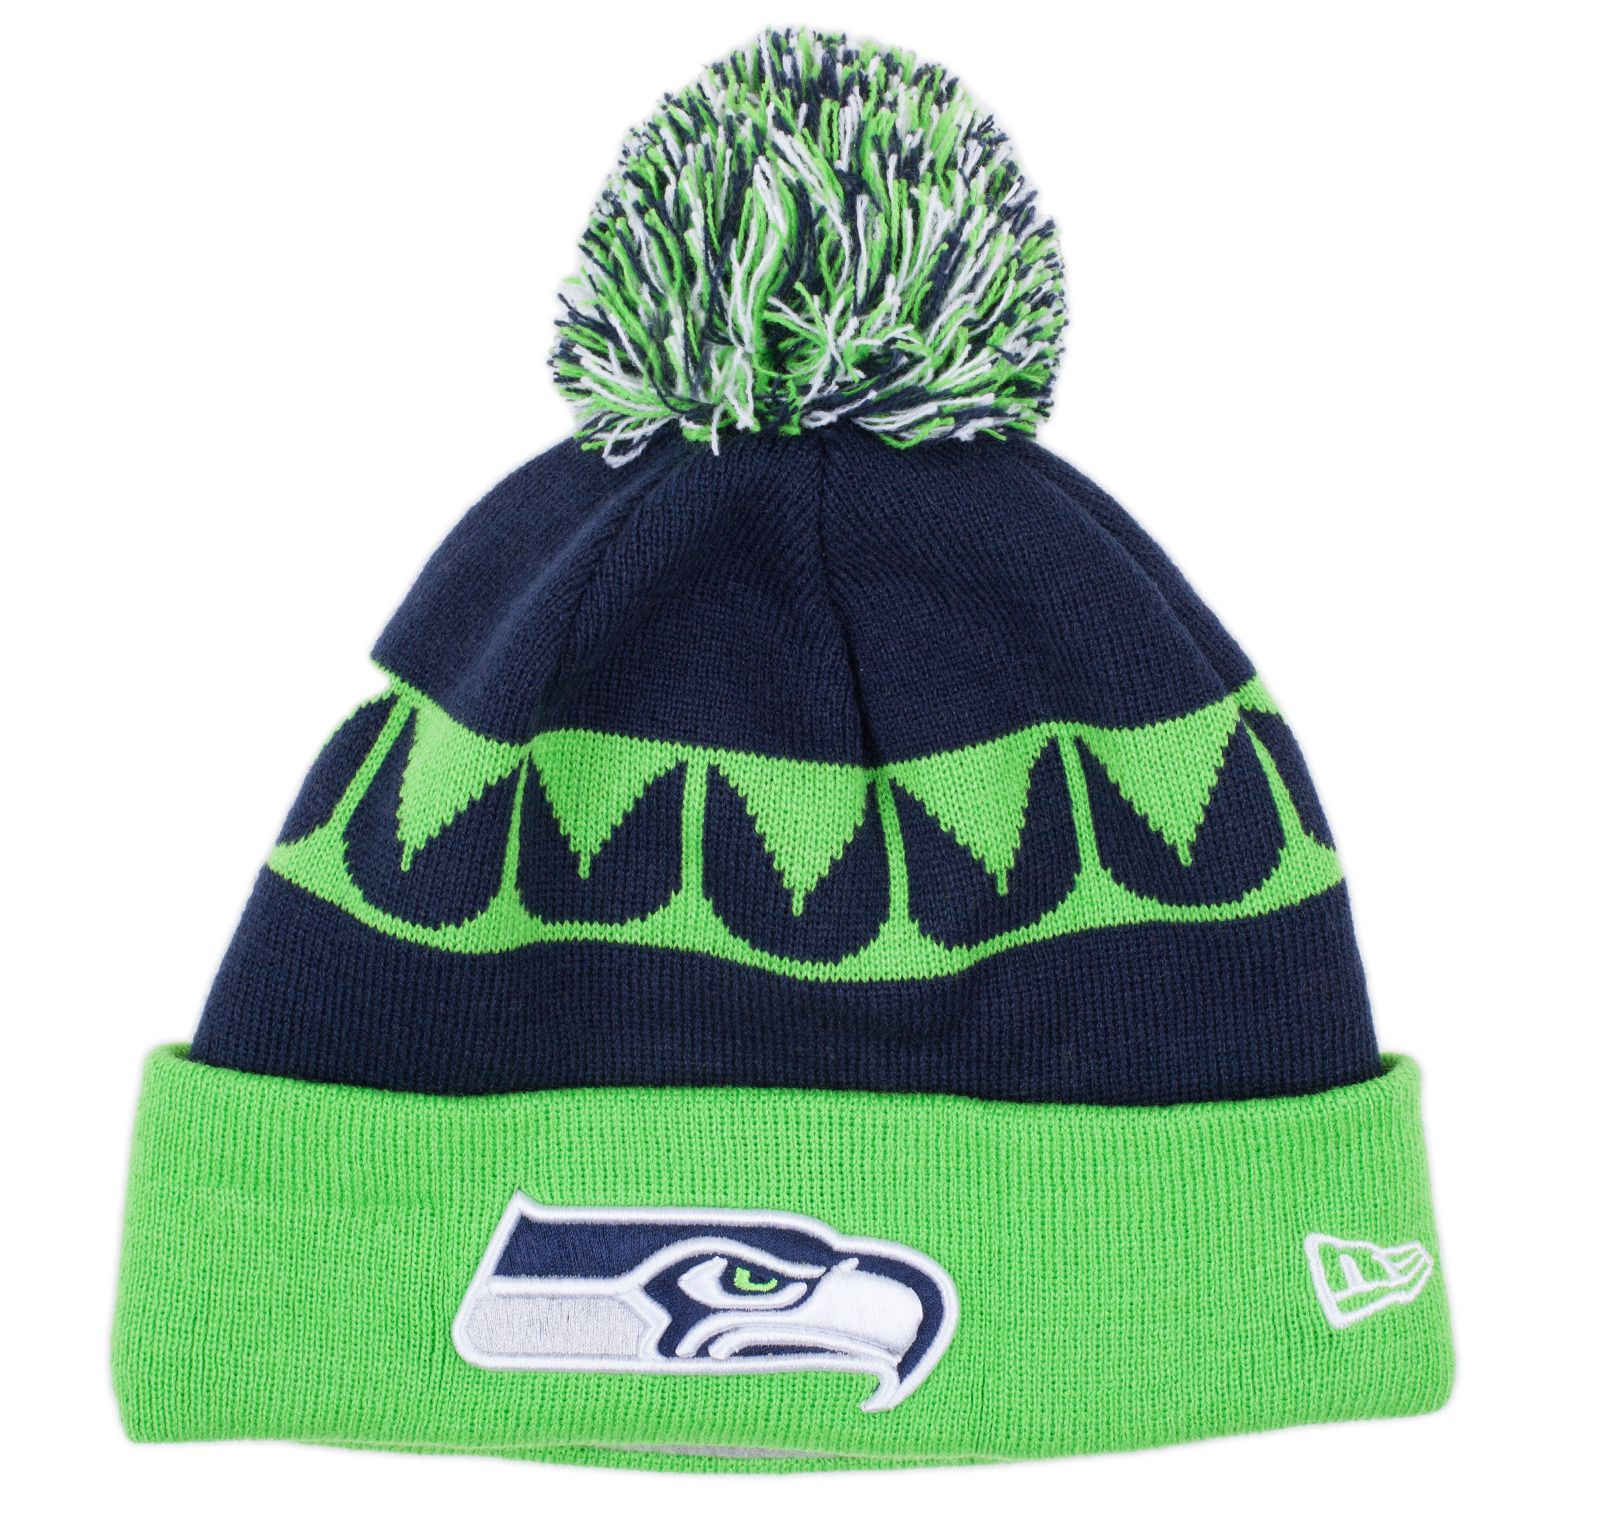 Caps - Knit - New Era NFL 2013 Sport Knit Hat - Seattle Seahawks - DTLR - Down Town Locker Room. Your Fashion, Your Lifestyle!